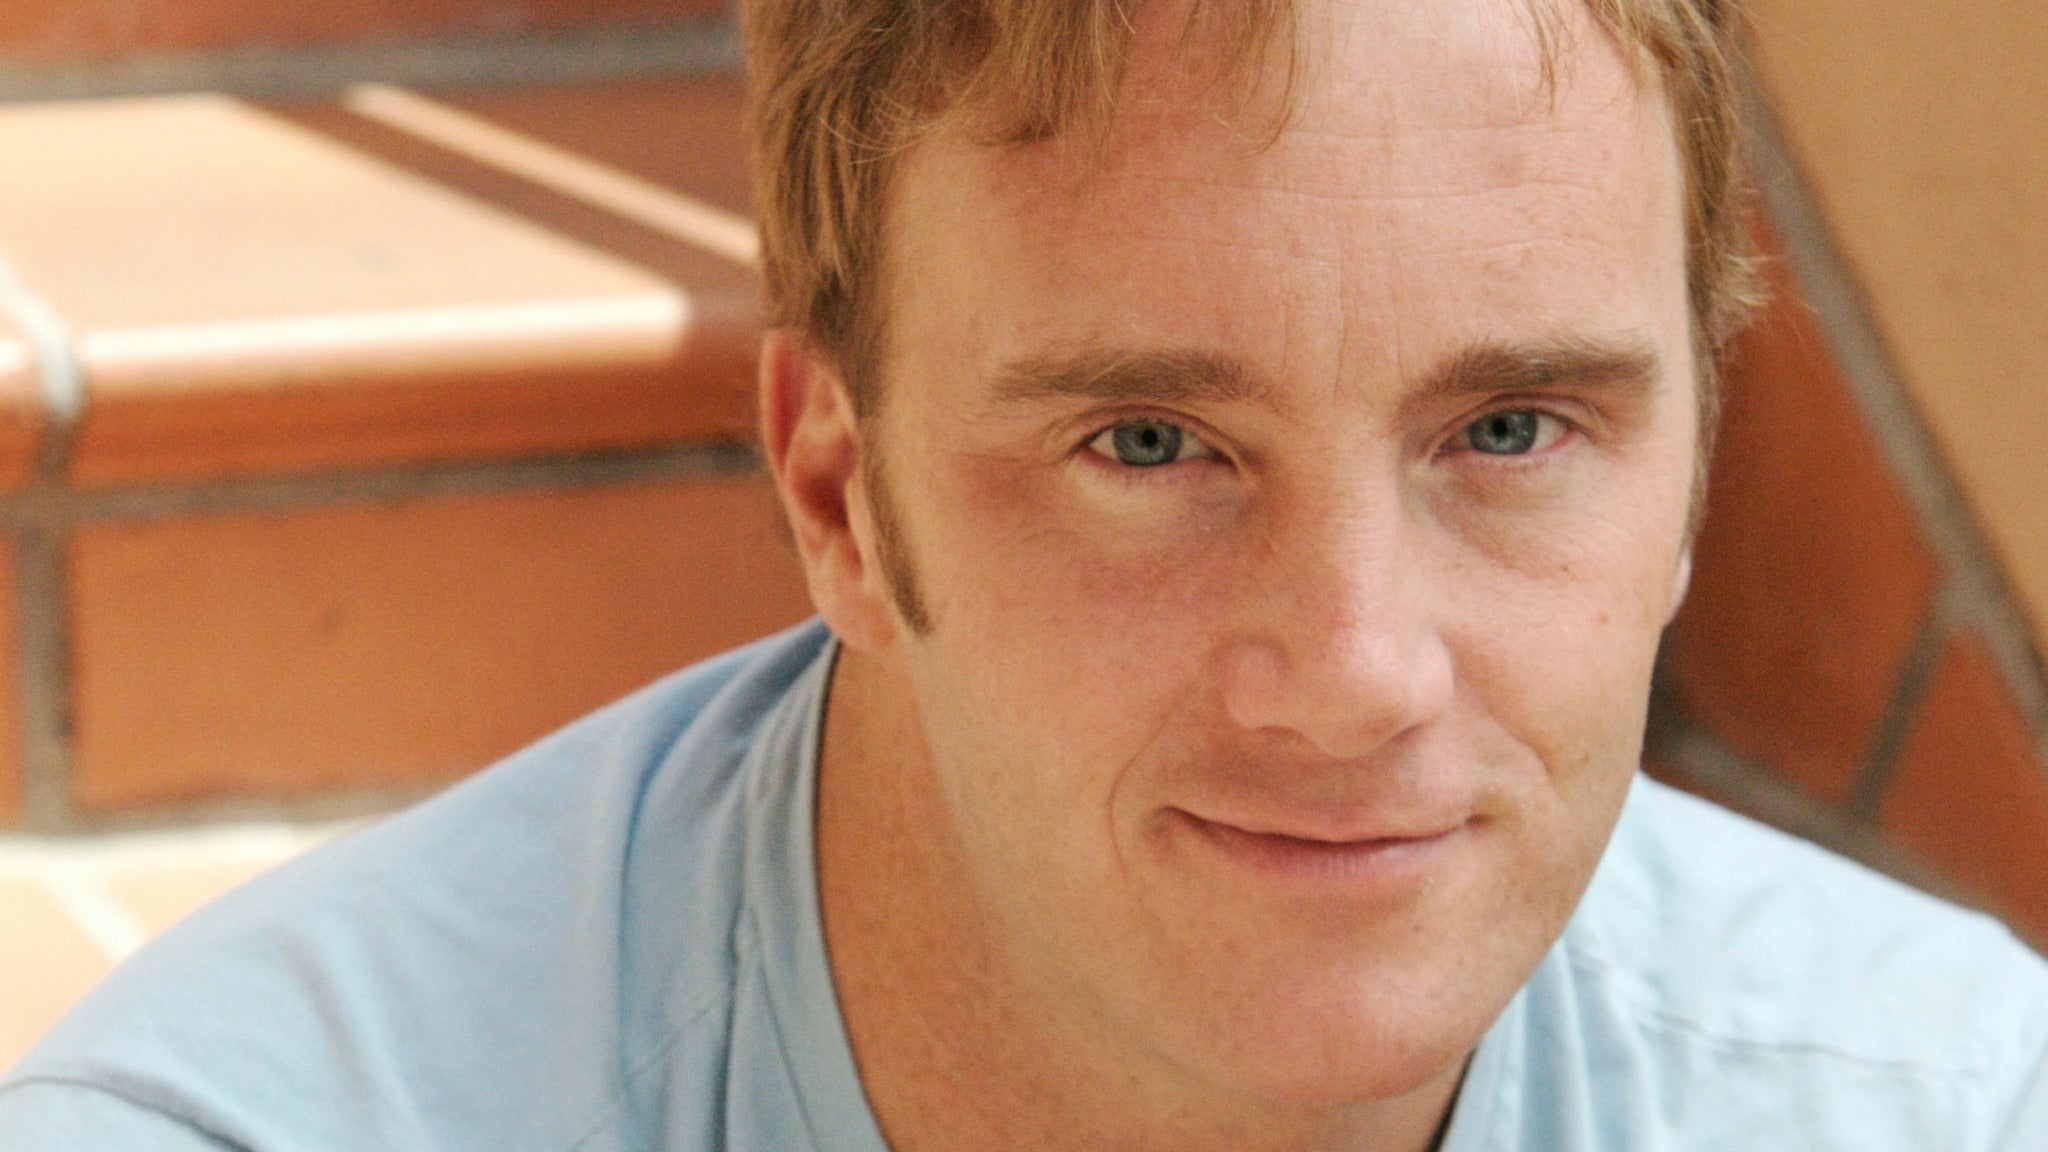 Jay Mohr at Hollywood Improv (The Main Room) - Hollywood, CA 90046